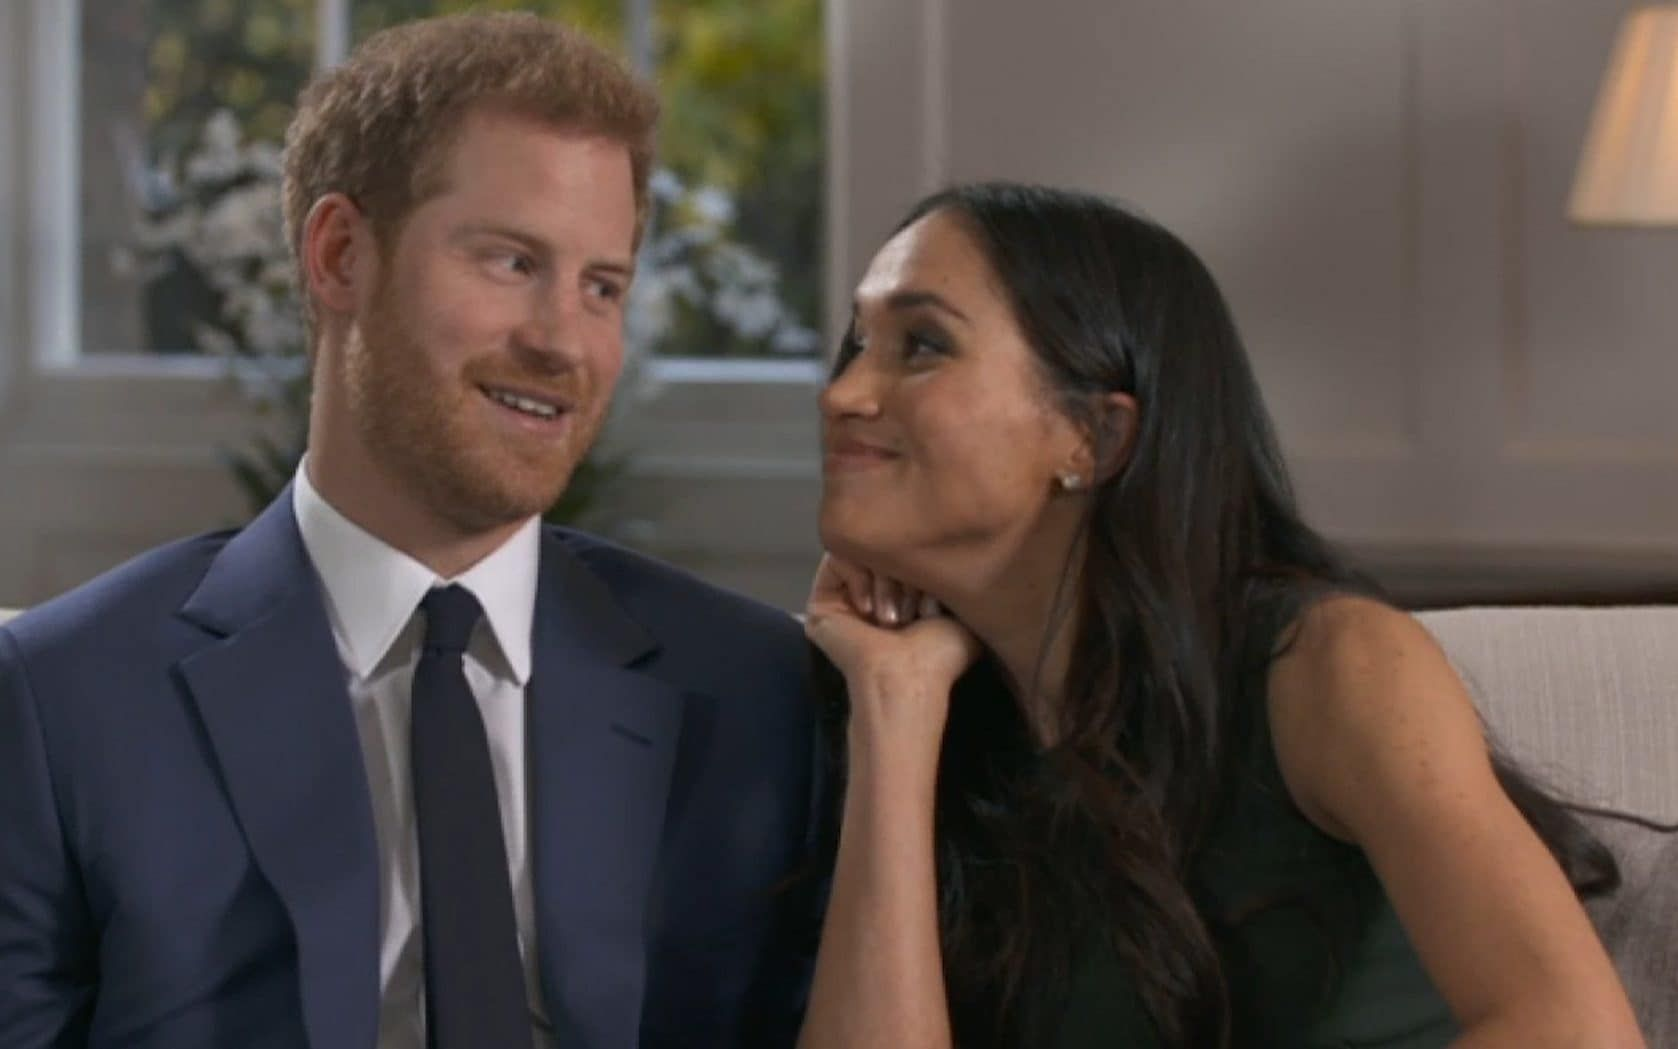 Behind The Scenes Of Royal Engagement Interview Prince Harry And Meghan Markle Joke Around In Previously Unseen Footage Prince Harry And Meghan Prince Harry Interview Meghan Markle Prince Harry